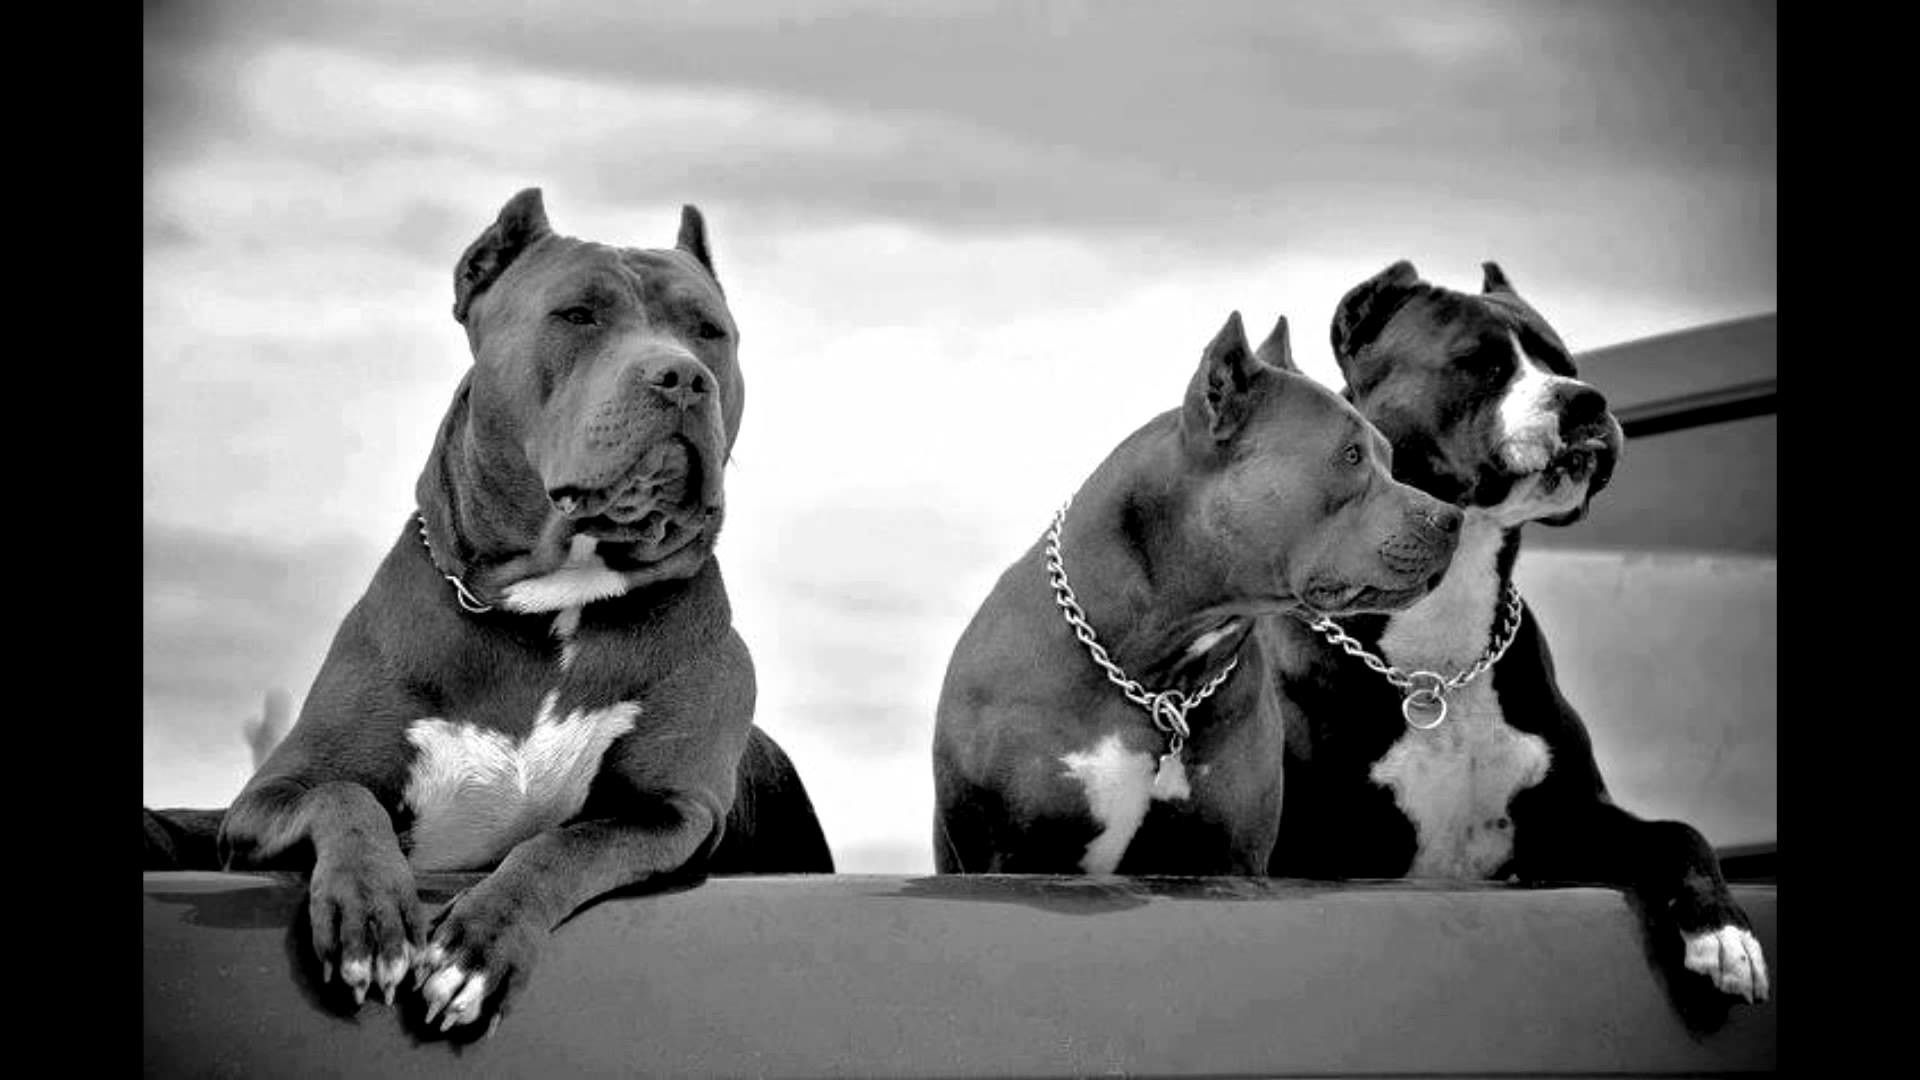 pitbull screensavers and wallpaper (51+ images)